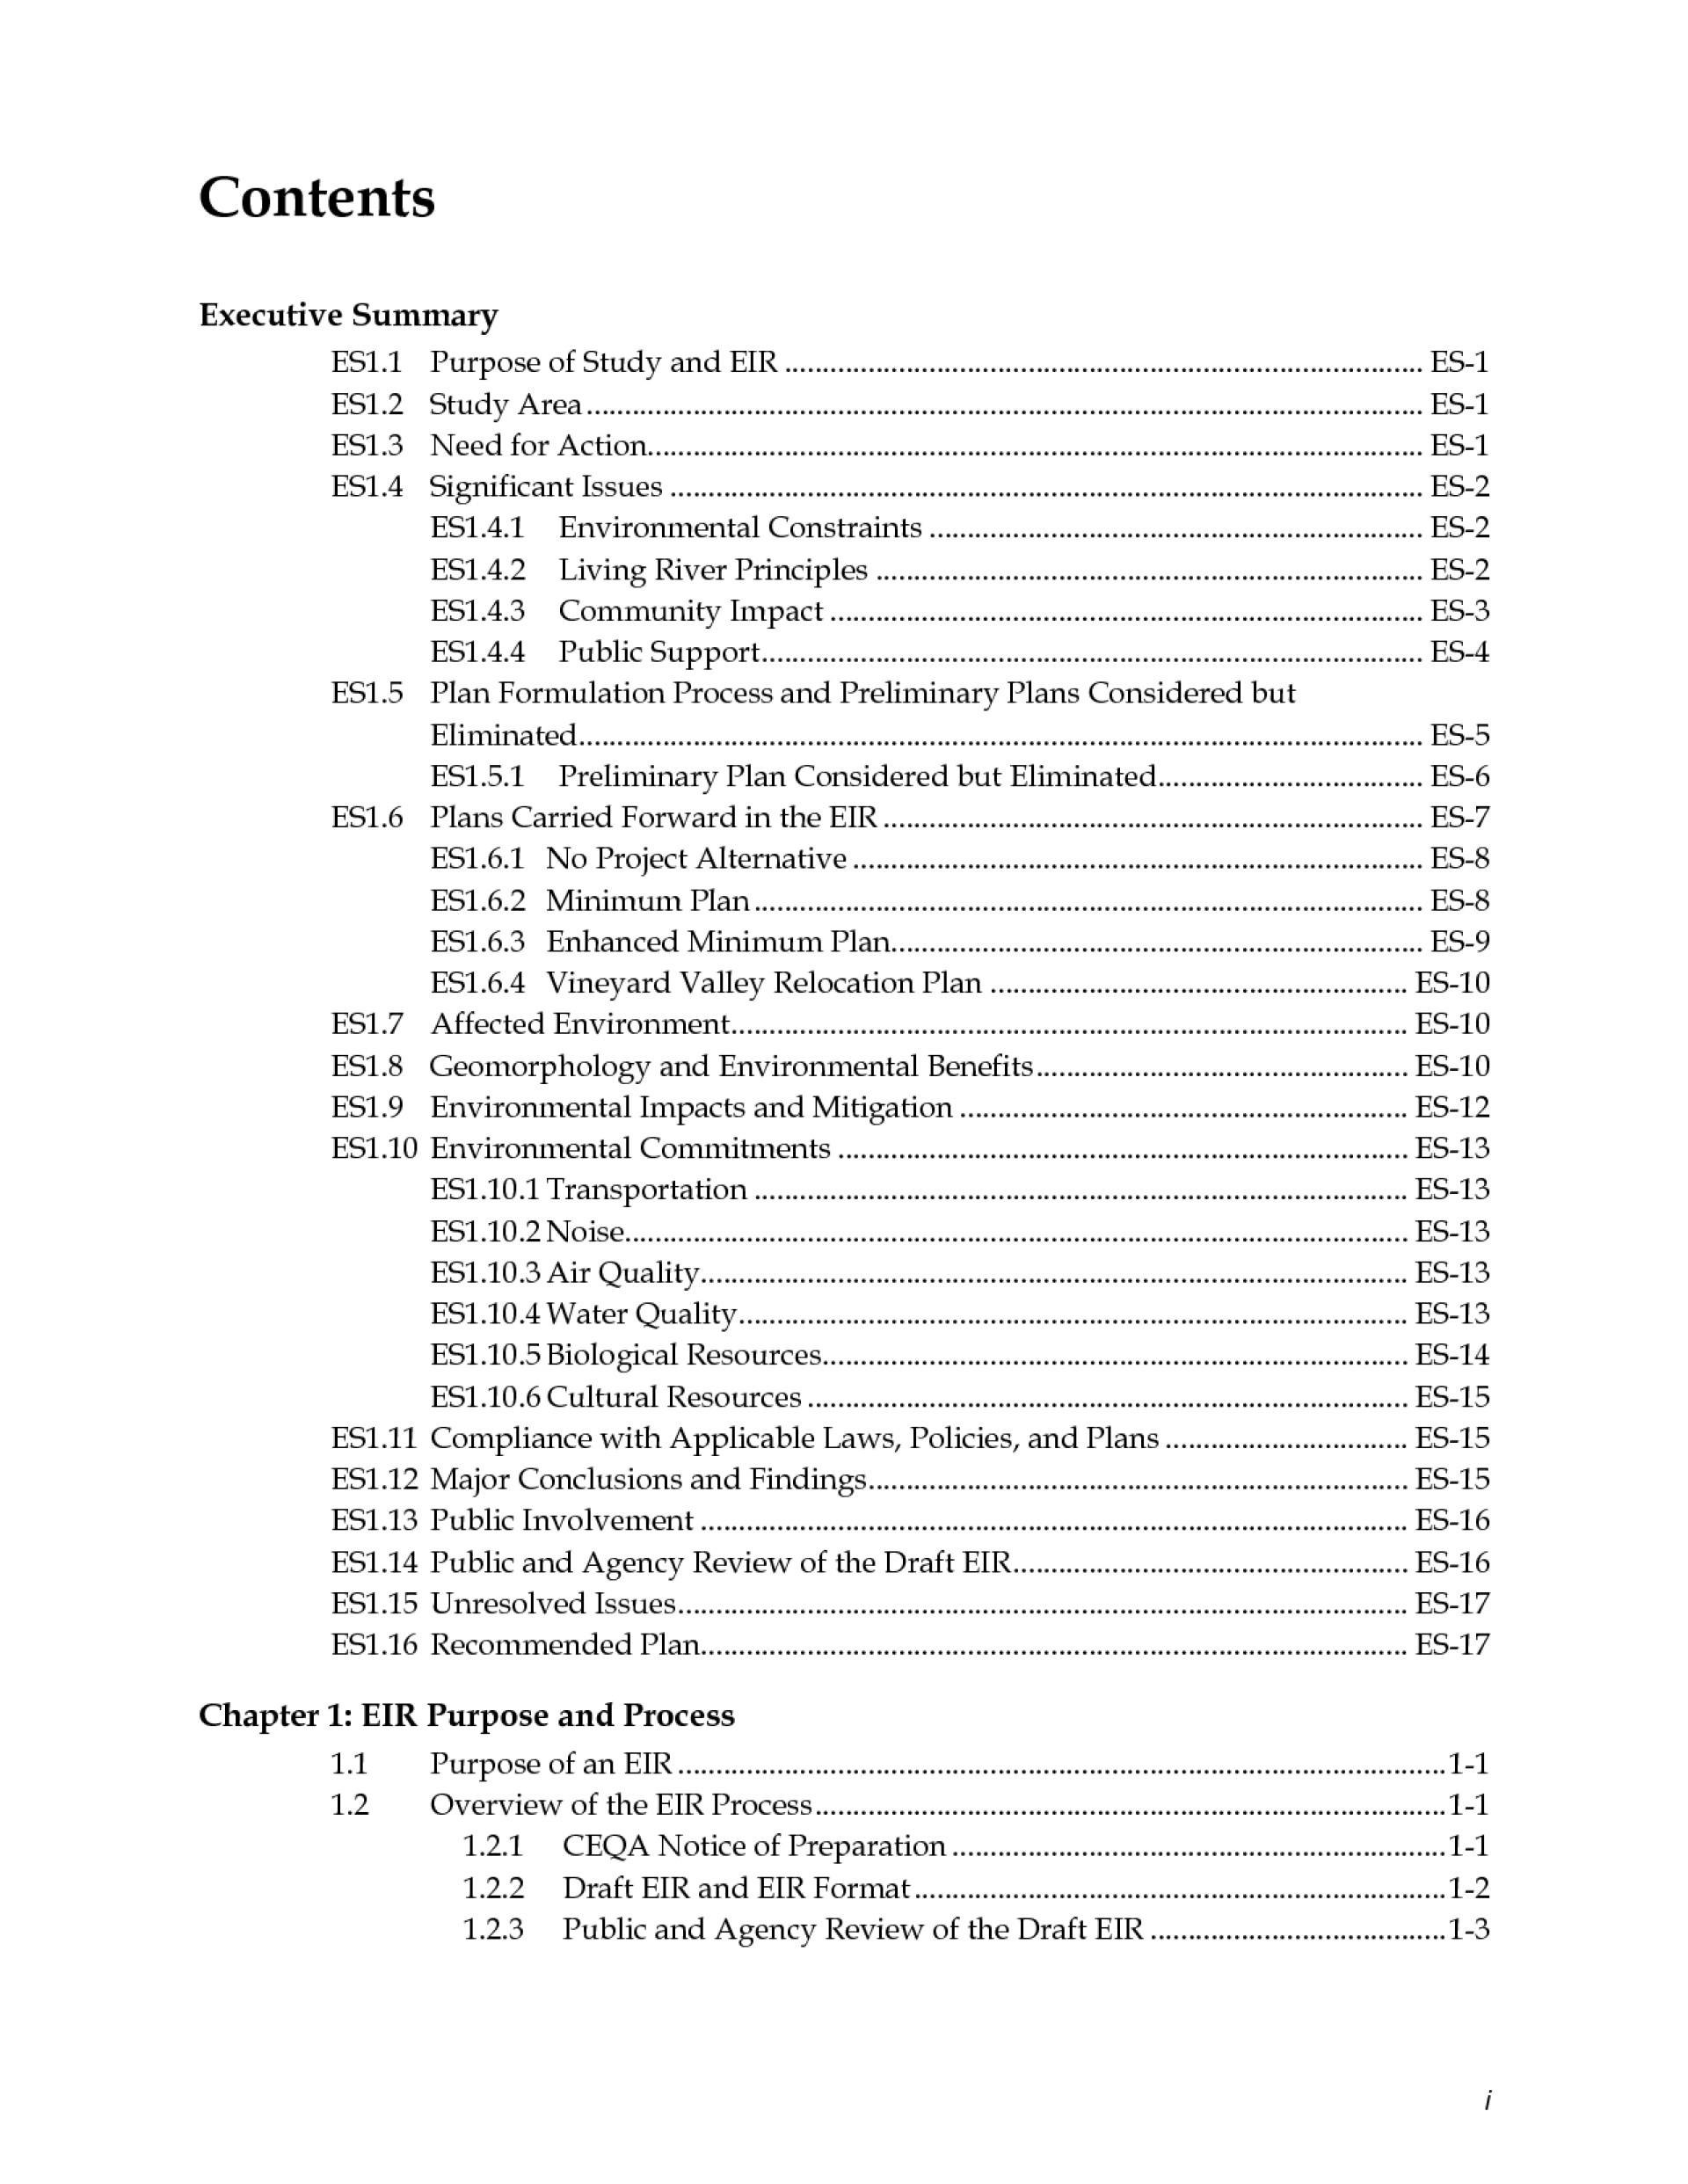 008 Research Paper Table Of Contents Format Template 577379 Fascinating Apa With Style Example 1920